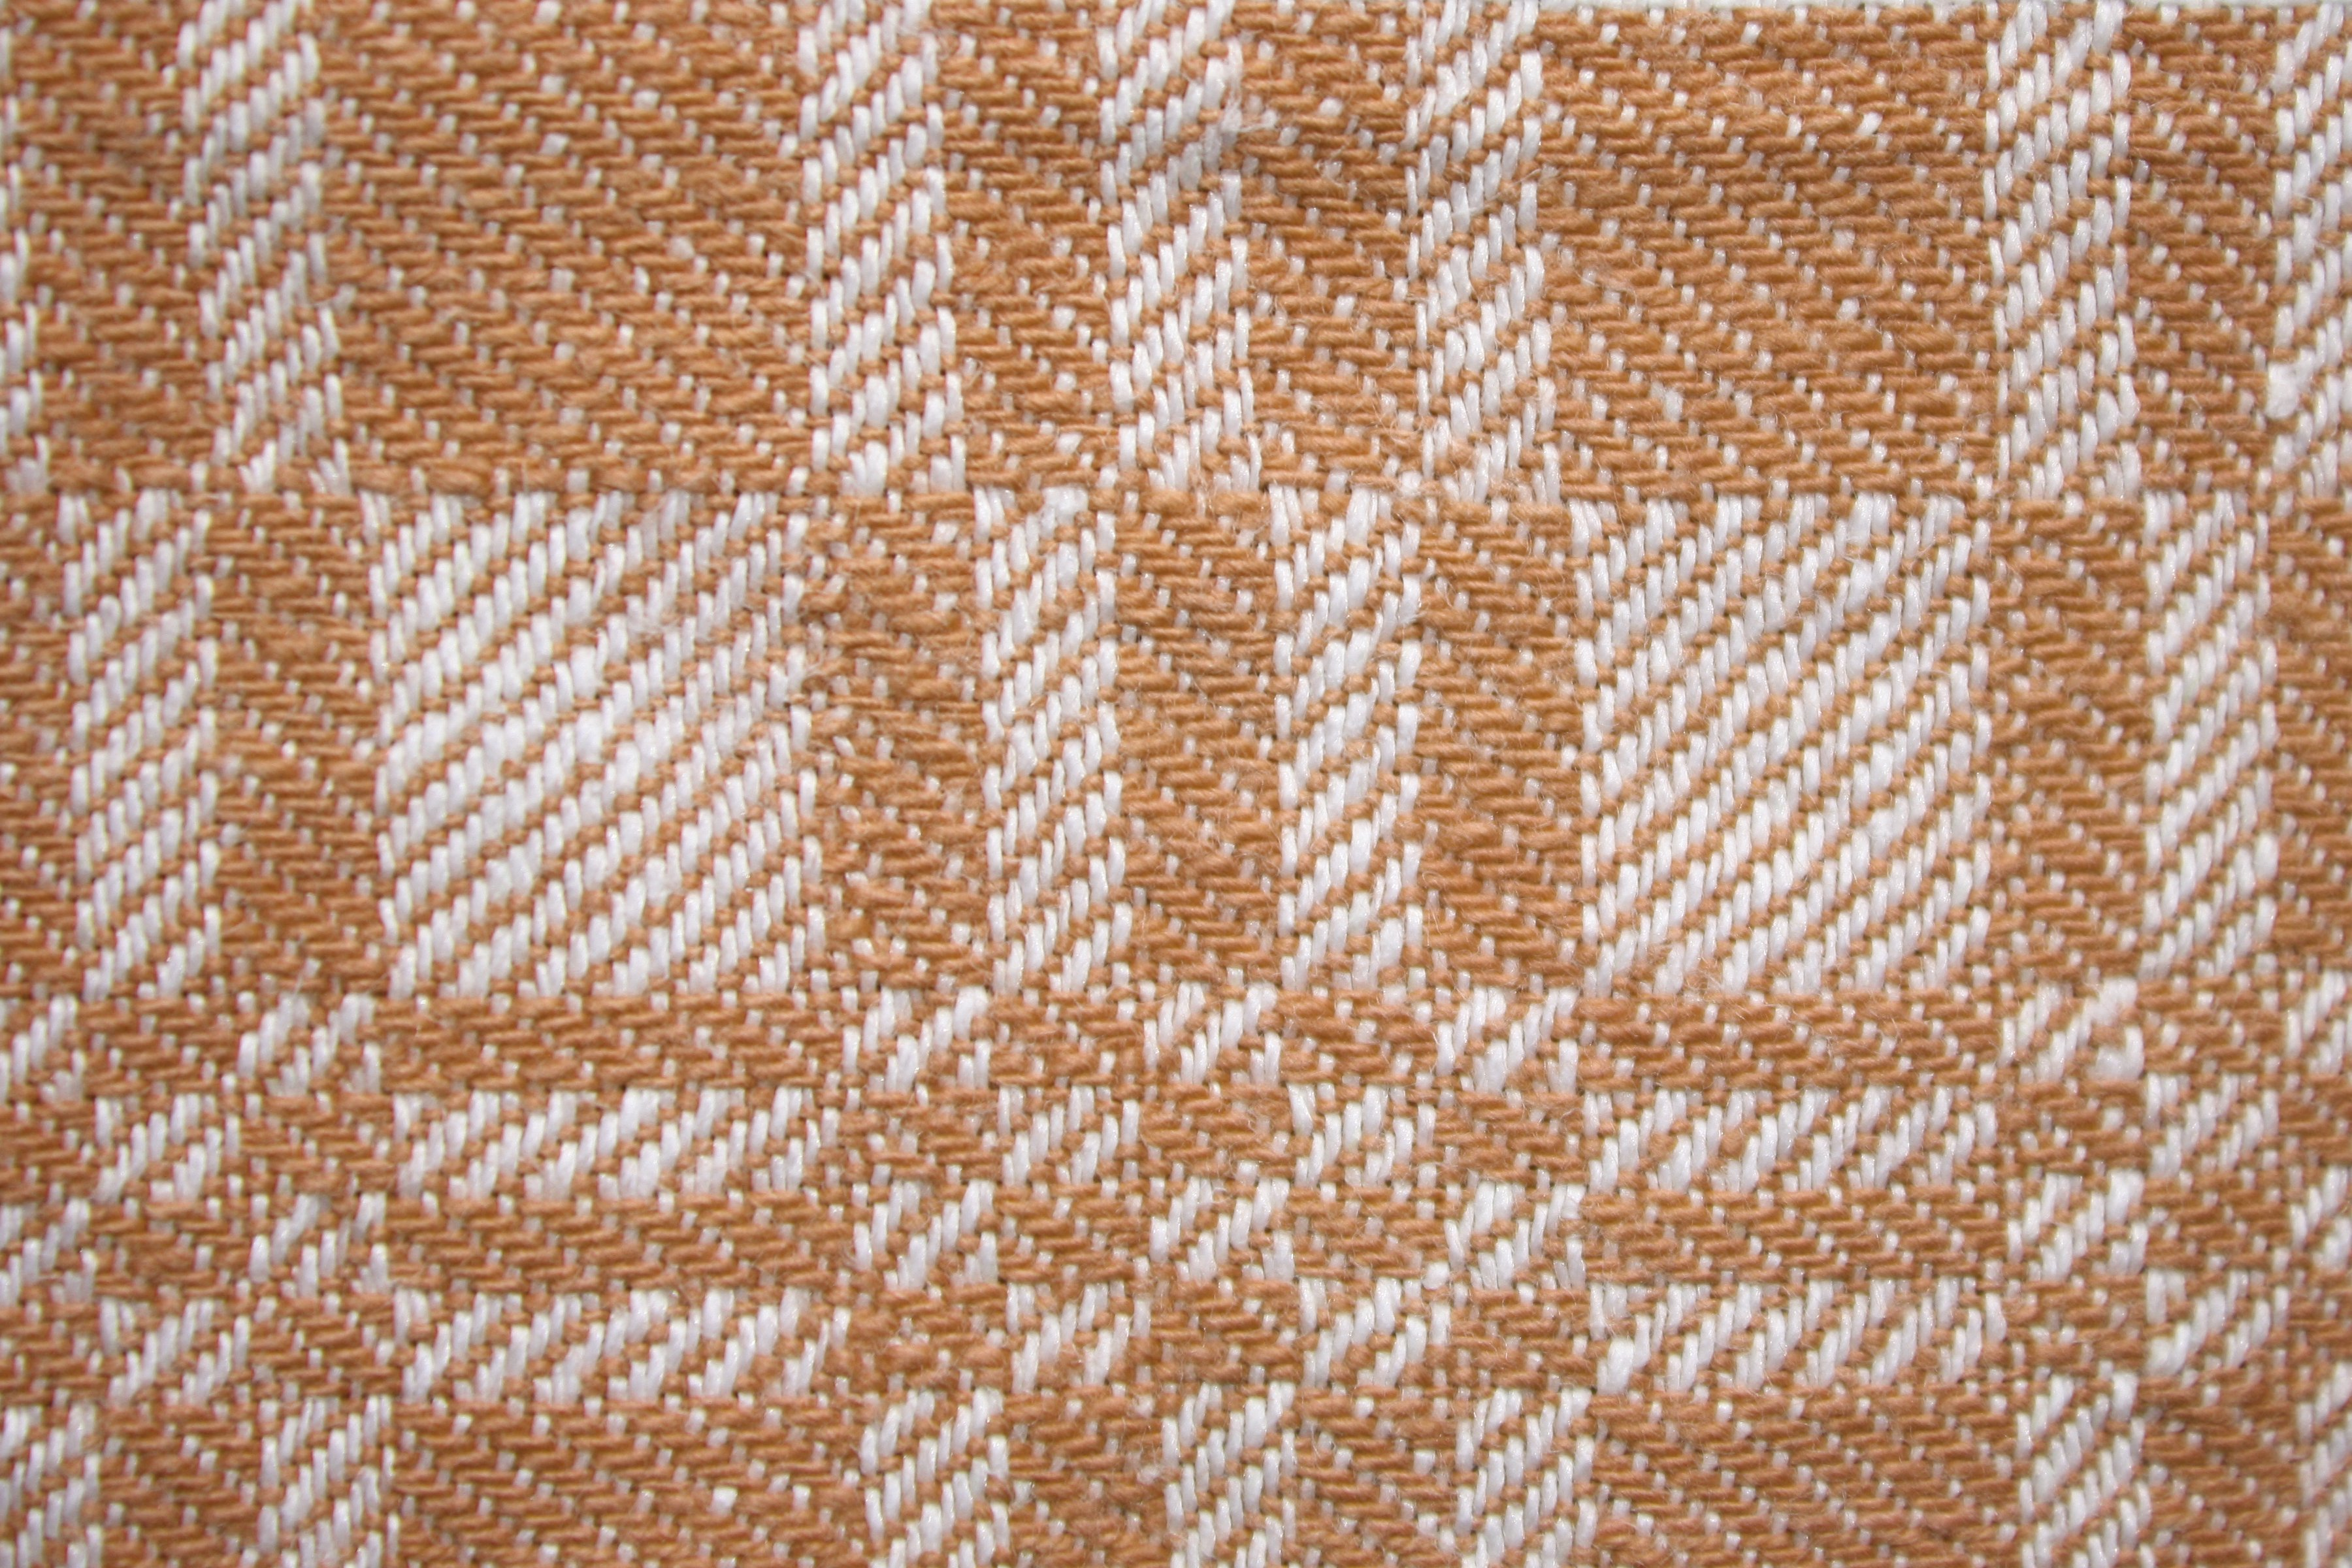 3d Fireworks Live Wallpaper Full Brown And White Woven Fabric Texture With Squares Pattern